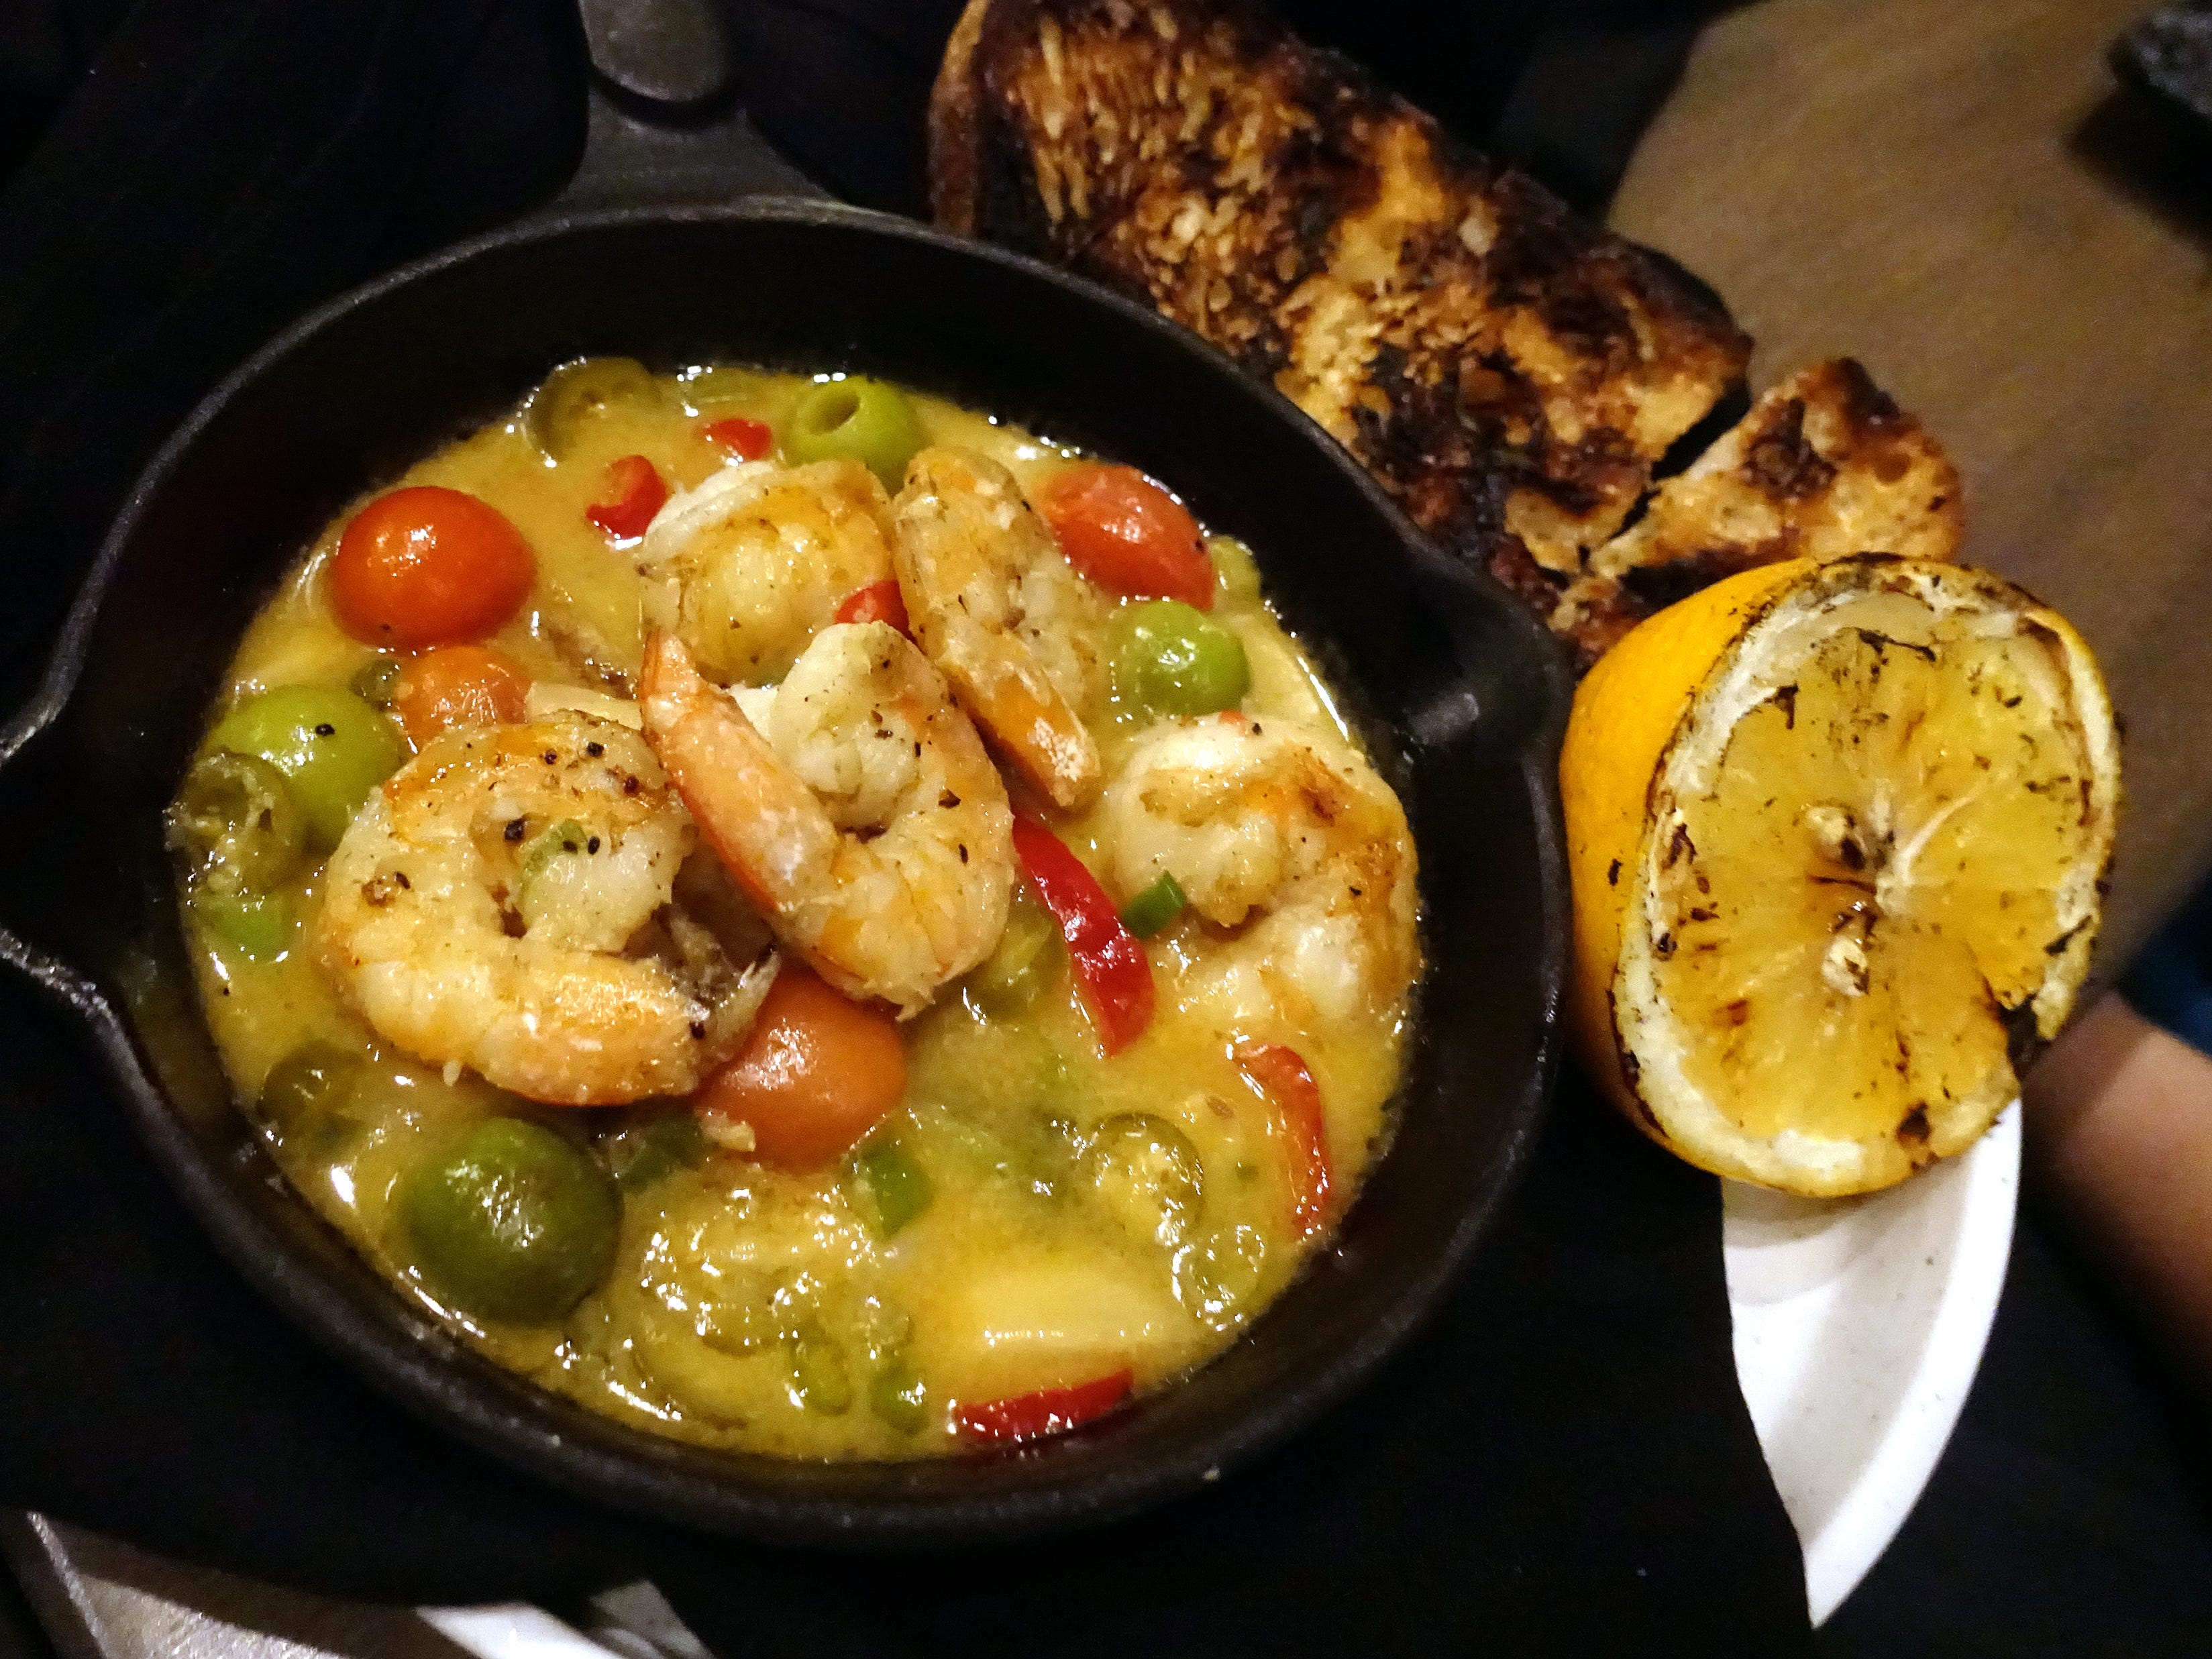 Wild gulf shrimp with roasted garlic, scallion, tomatoes, Castelvetrano olives, herbs, white wine and grilled Noble bread at Little Rituals in Phoenix.